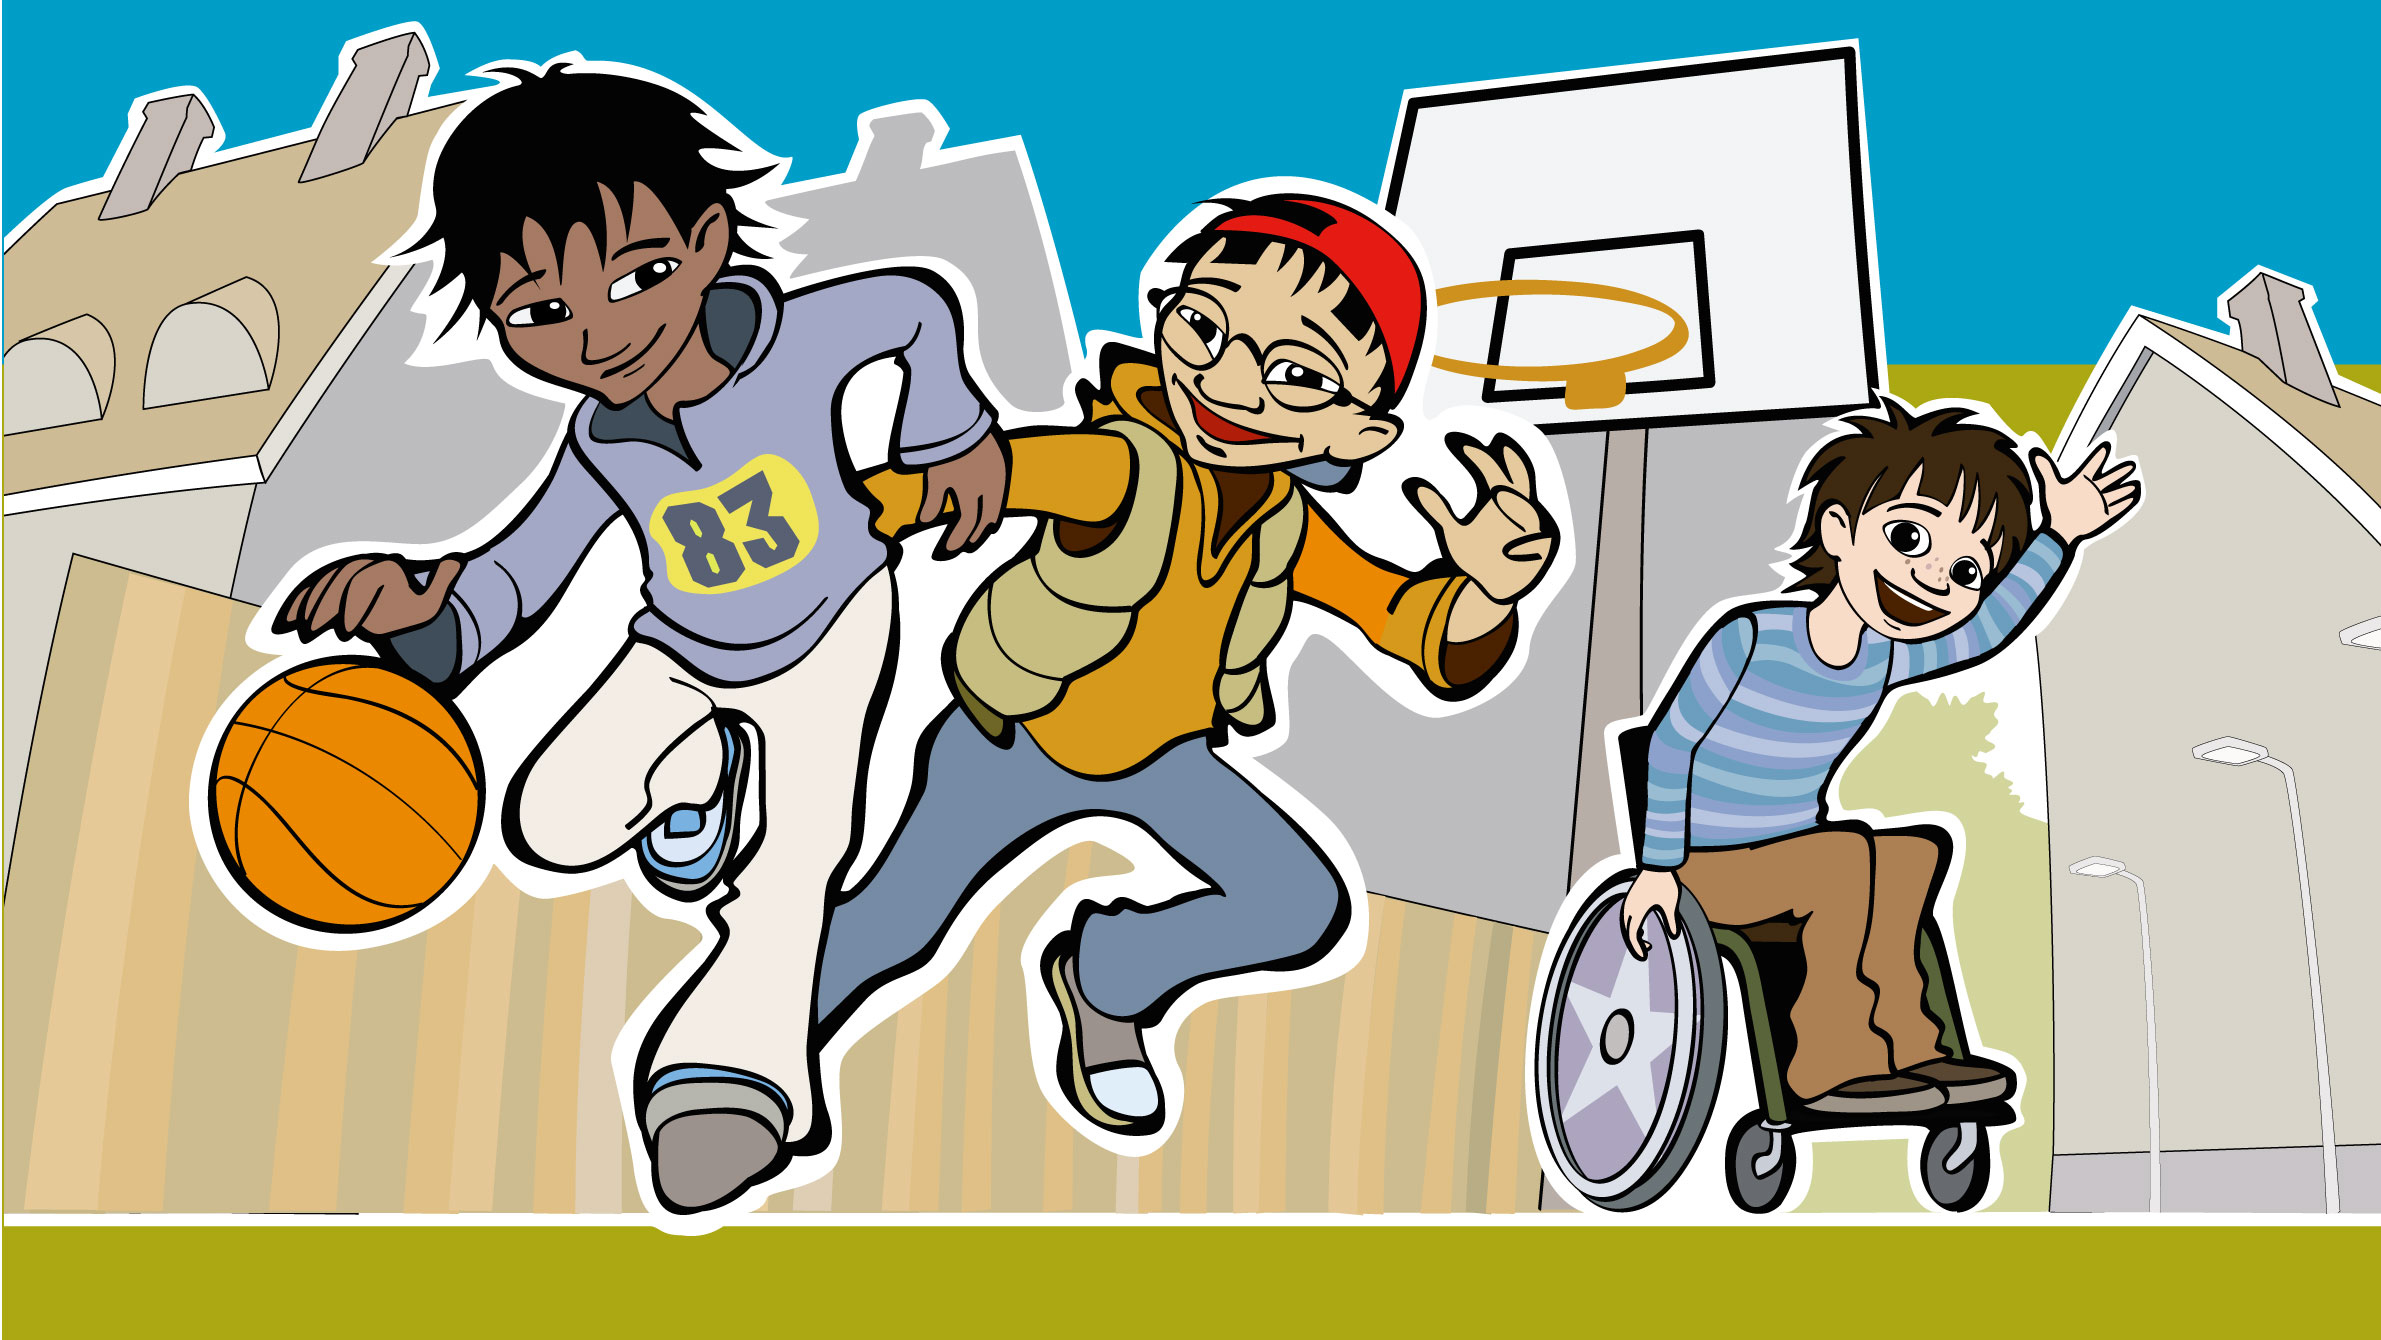 Wellspect Lofric Cartoon of children playing basketball